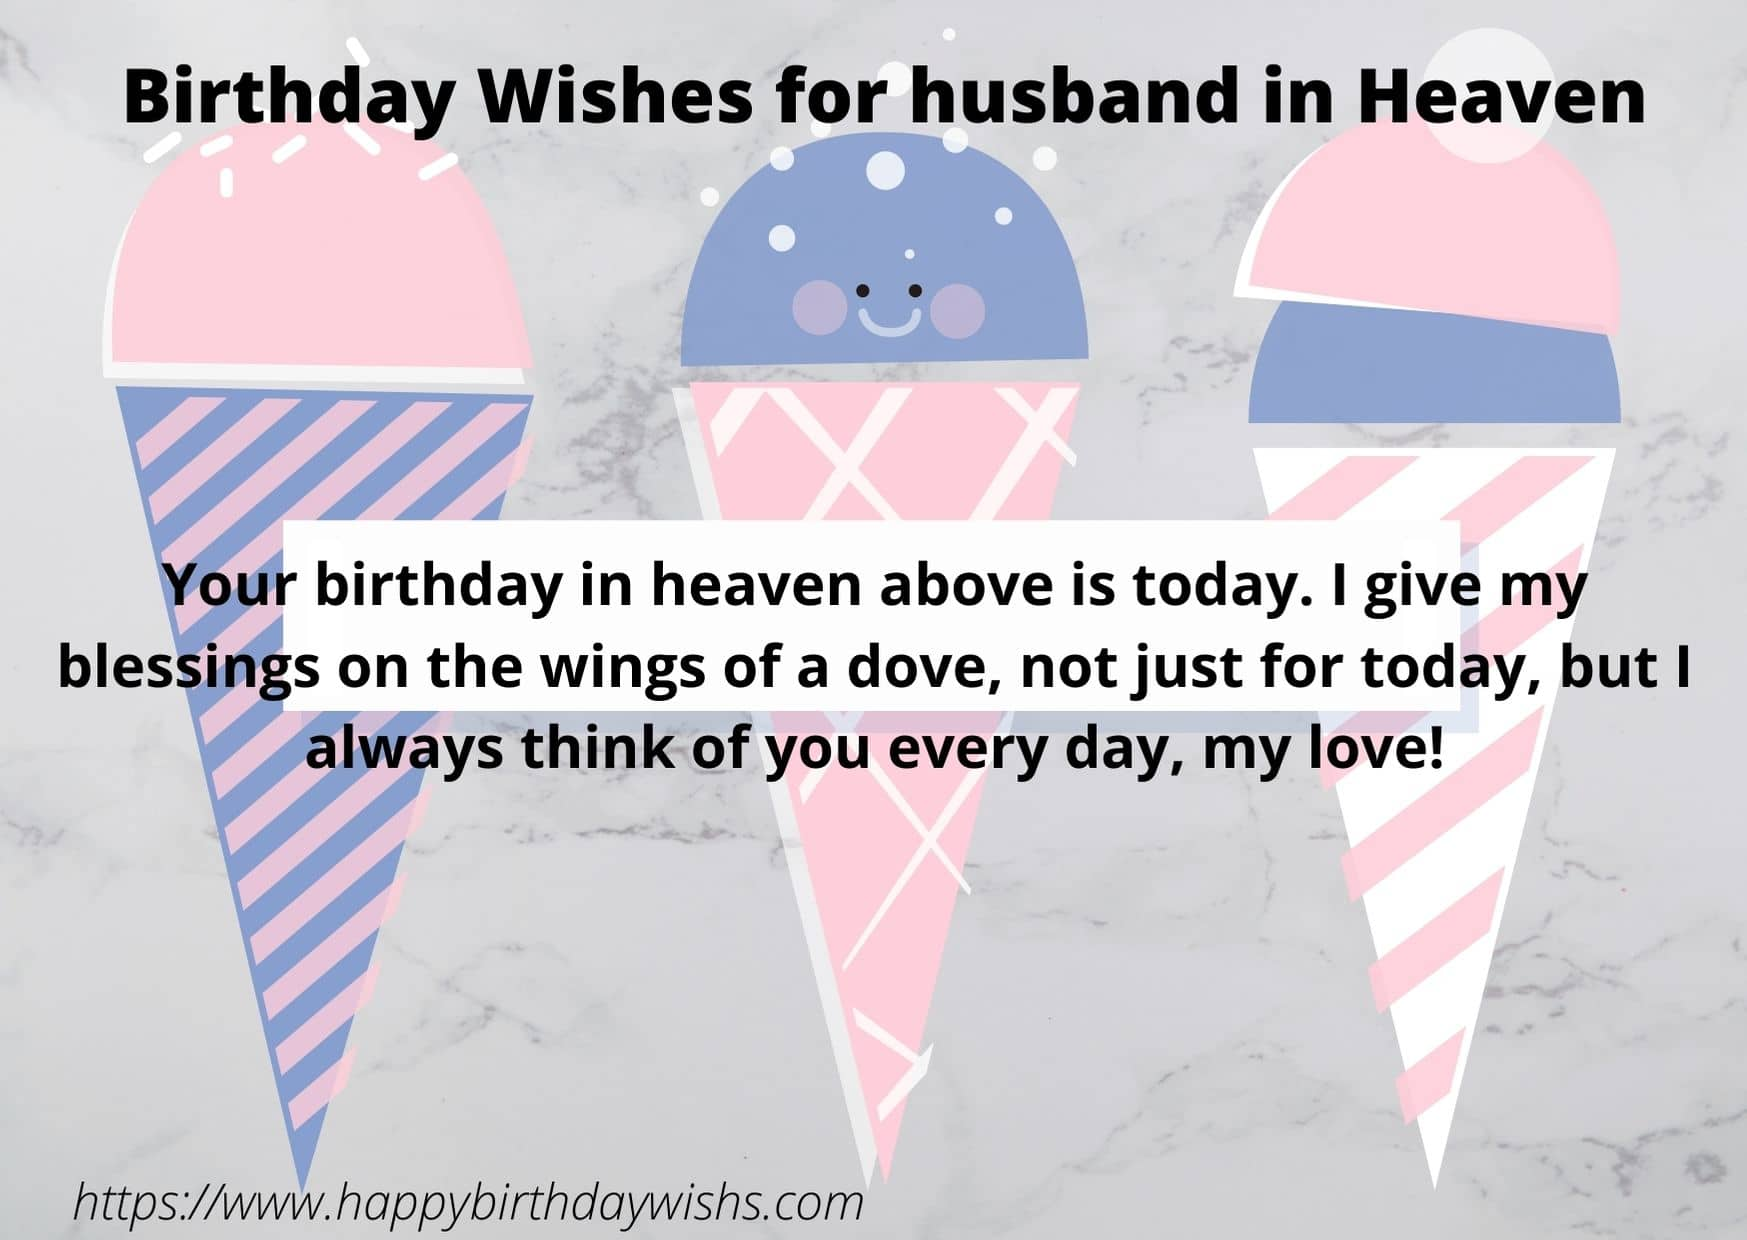 Happy birthday for husband in heaven